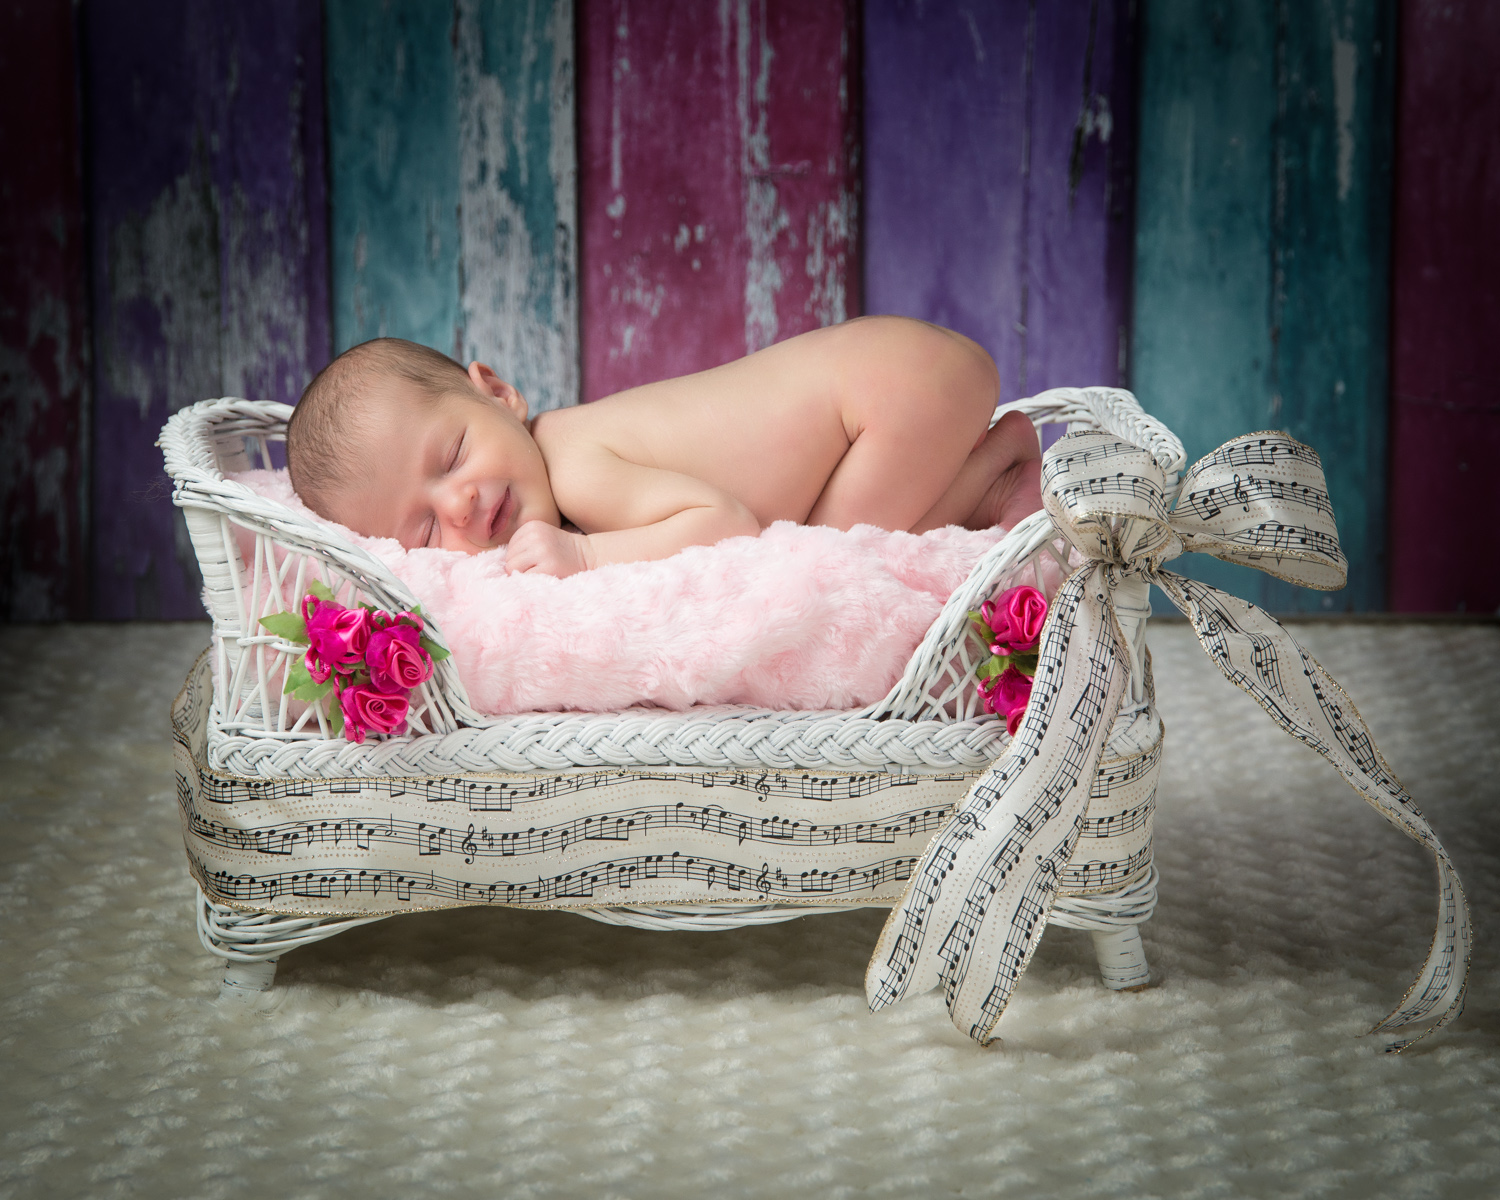 Baby Infant Photographer Photography Studio